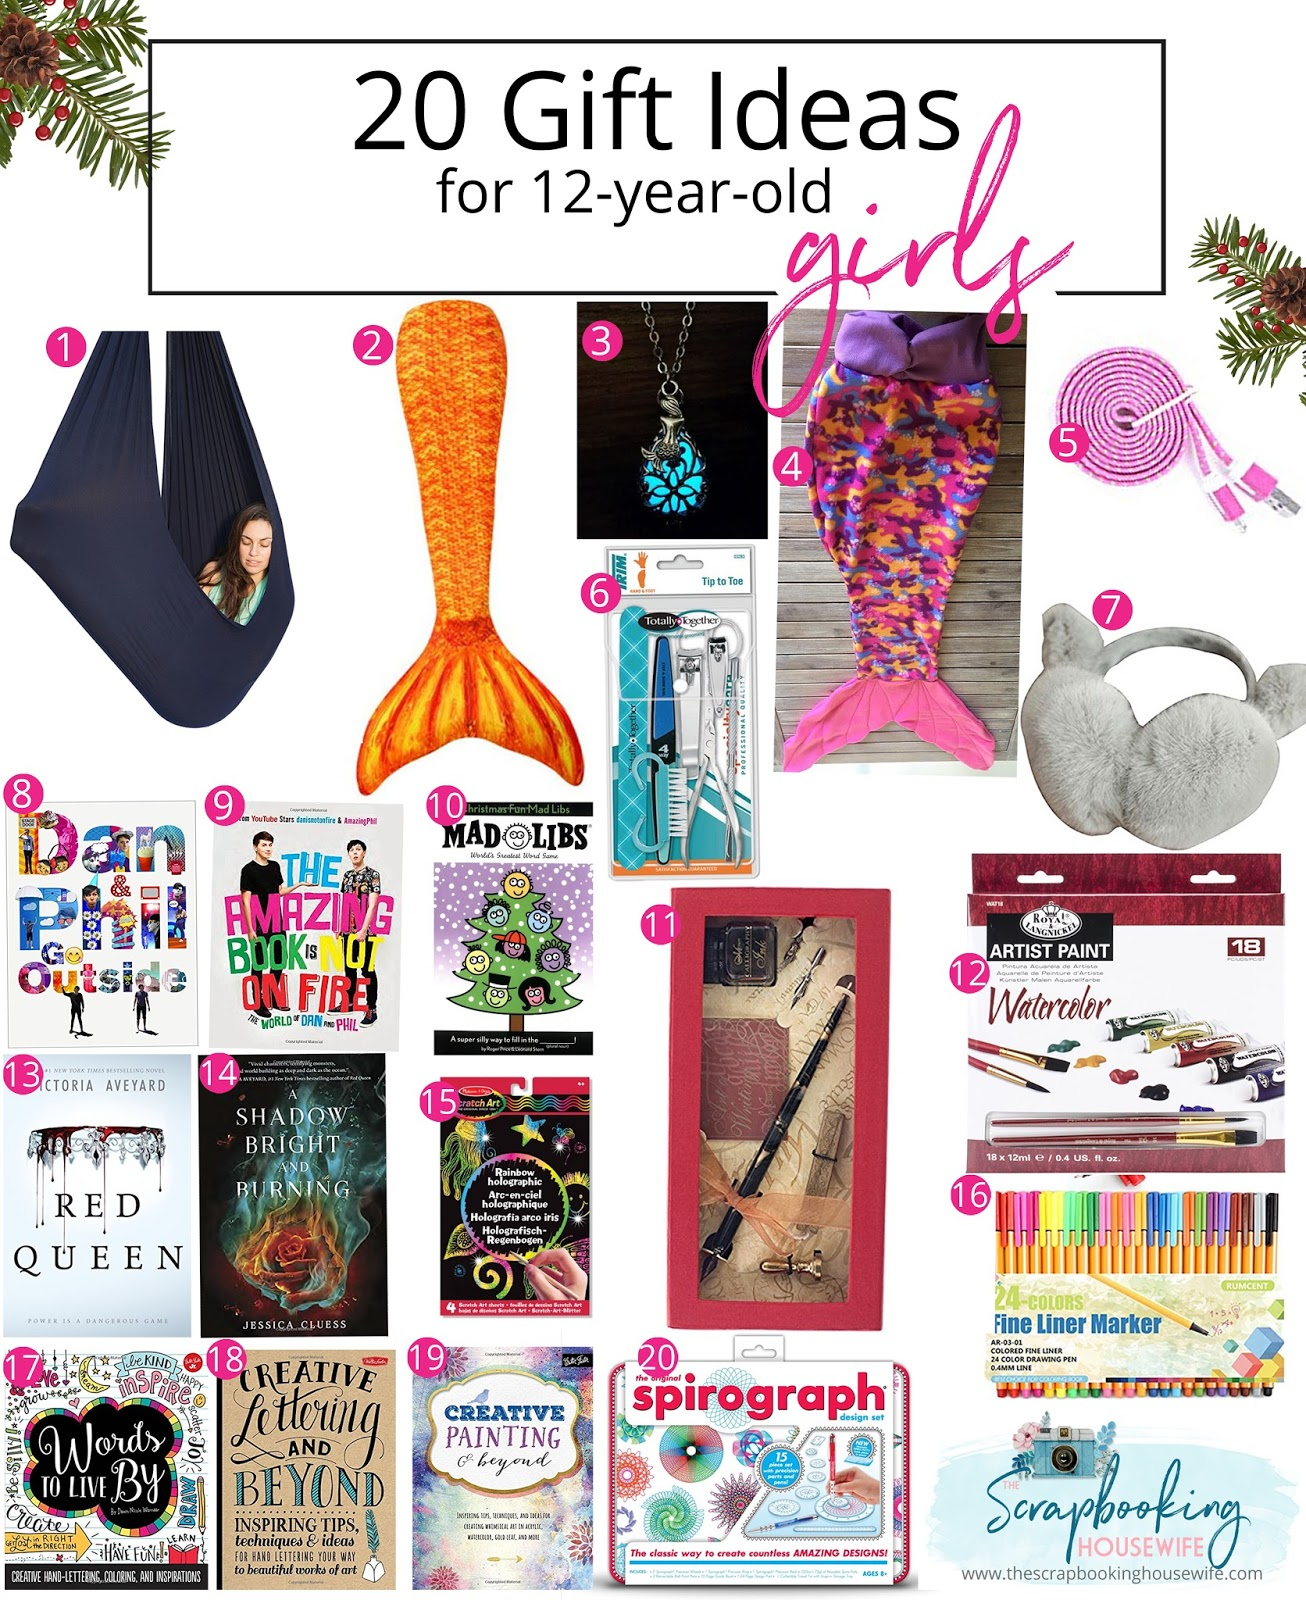 ellabella designs: 20 gift ideas for 12-year-old tween girls gift guide